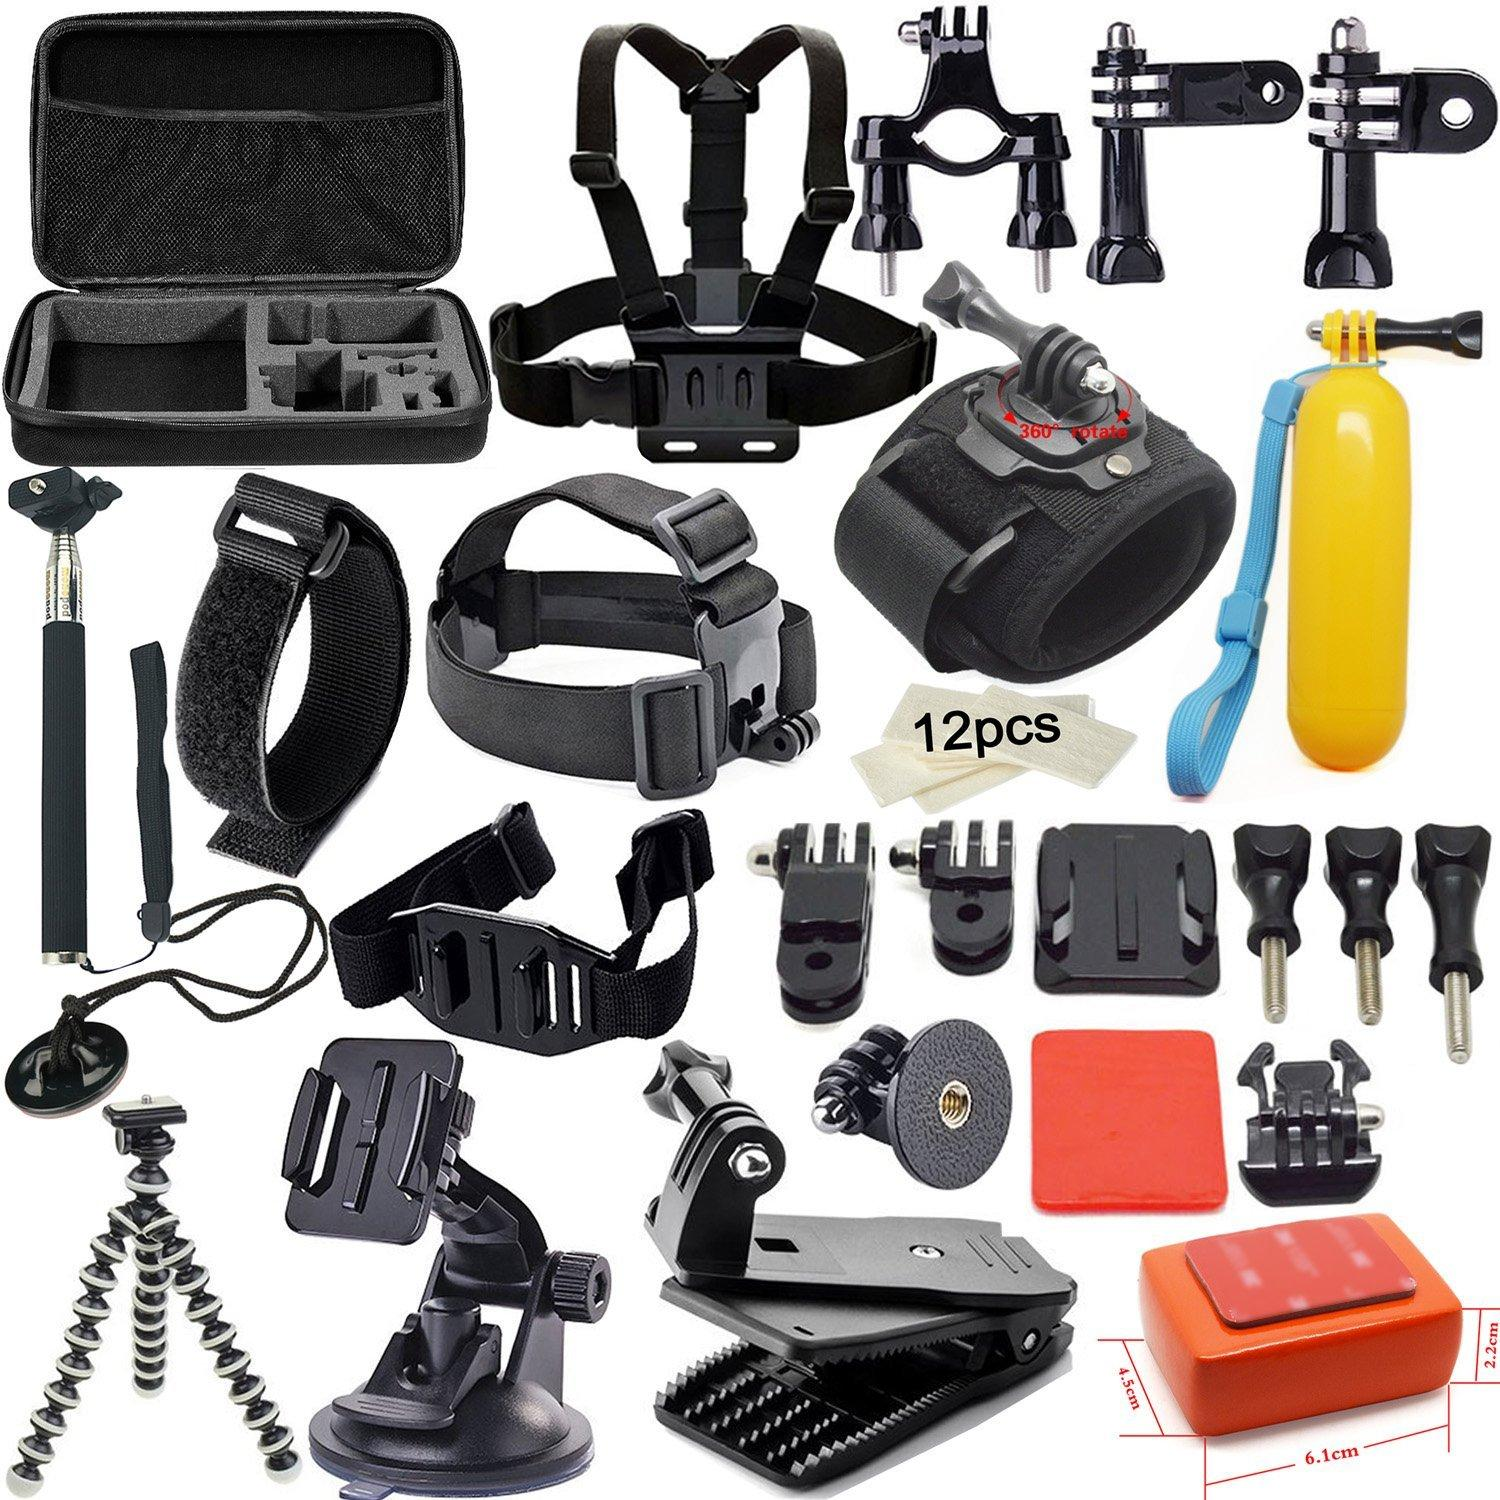 Soft Digits 42 in 1 Accessory kit Accessories for Gopro Hero4